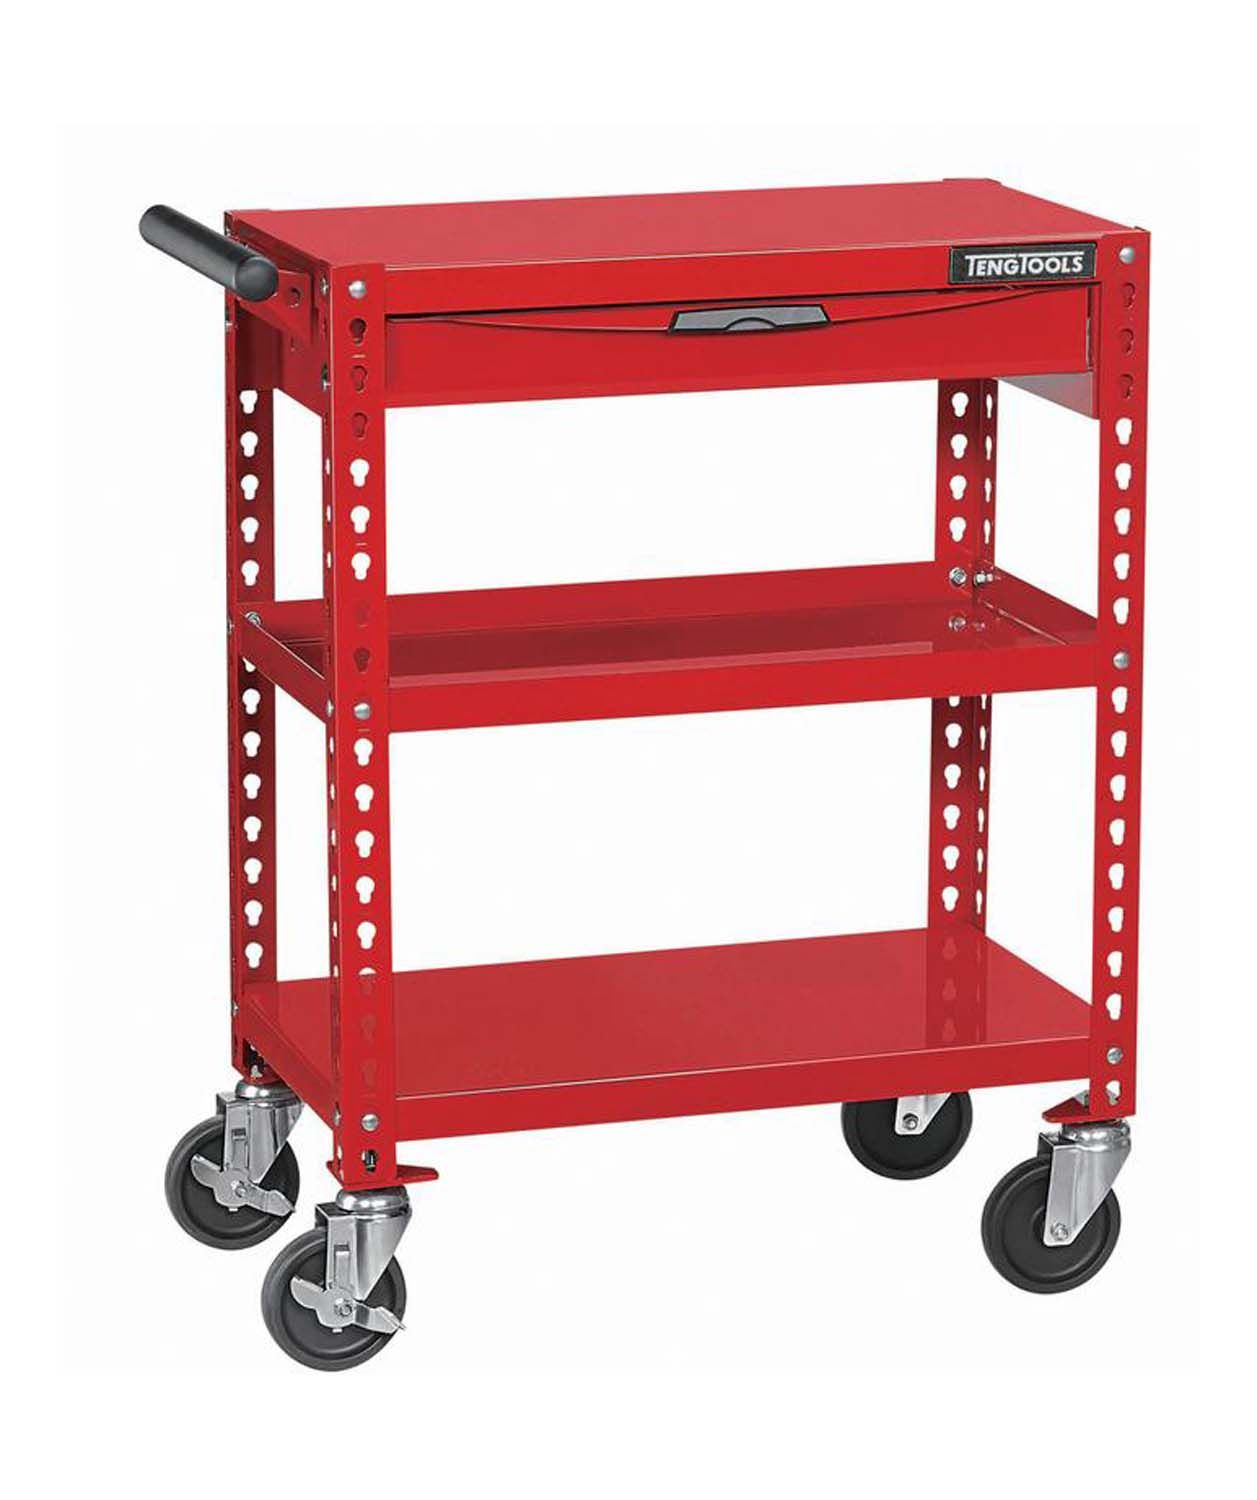 Teng Tools 700mm Wide Mobile Work Trolley